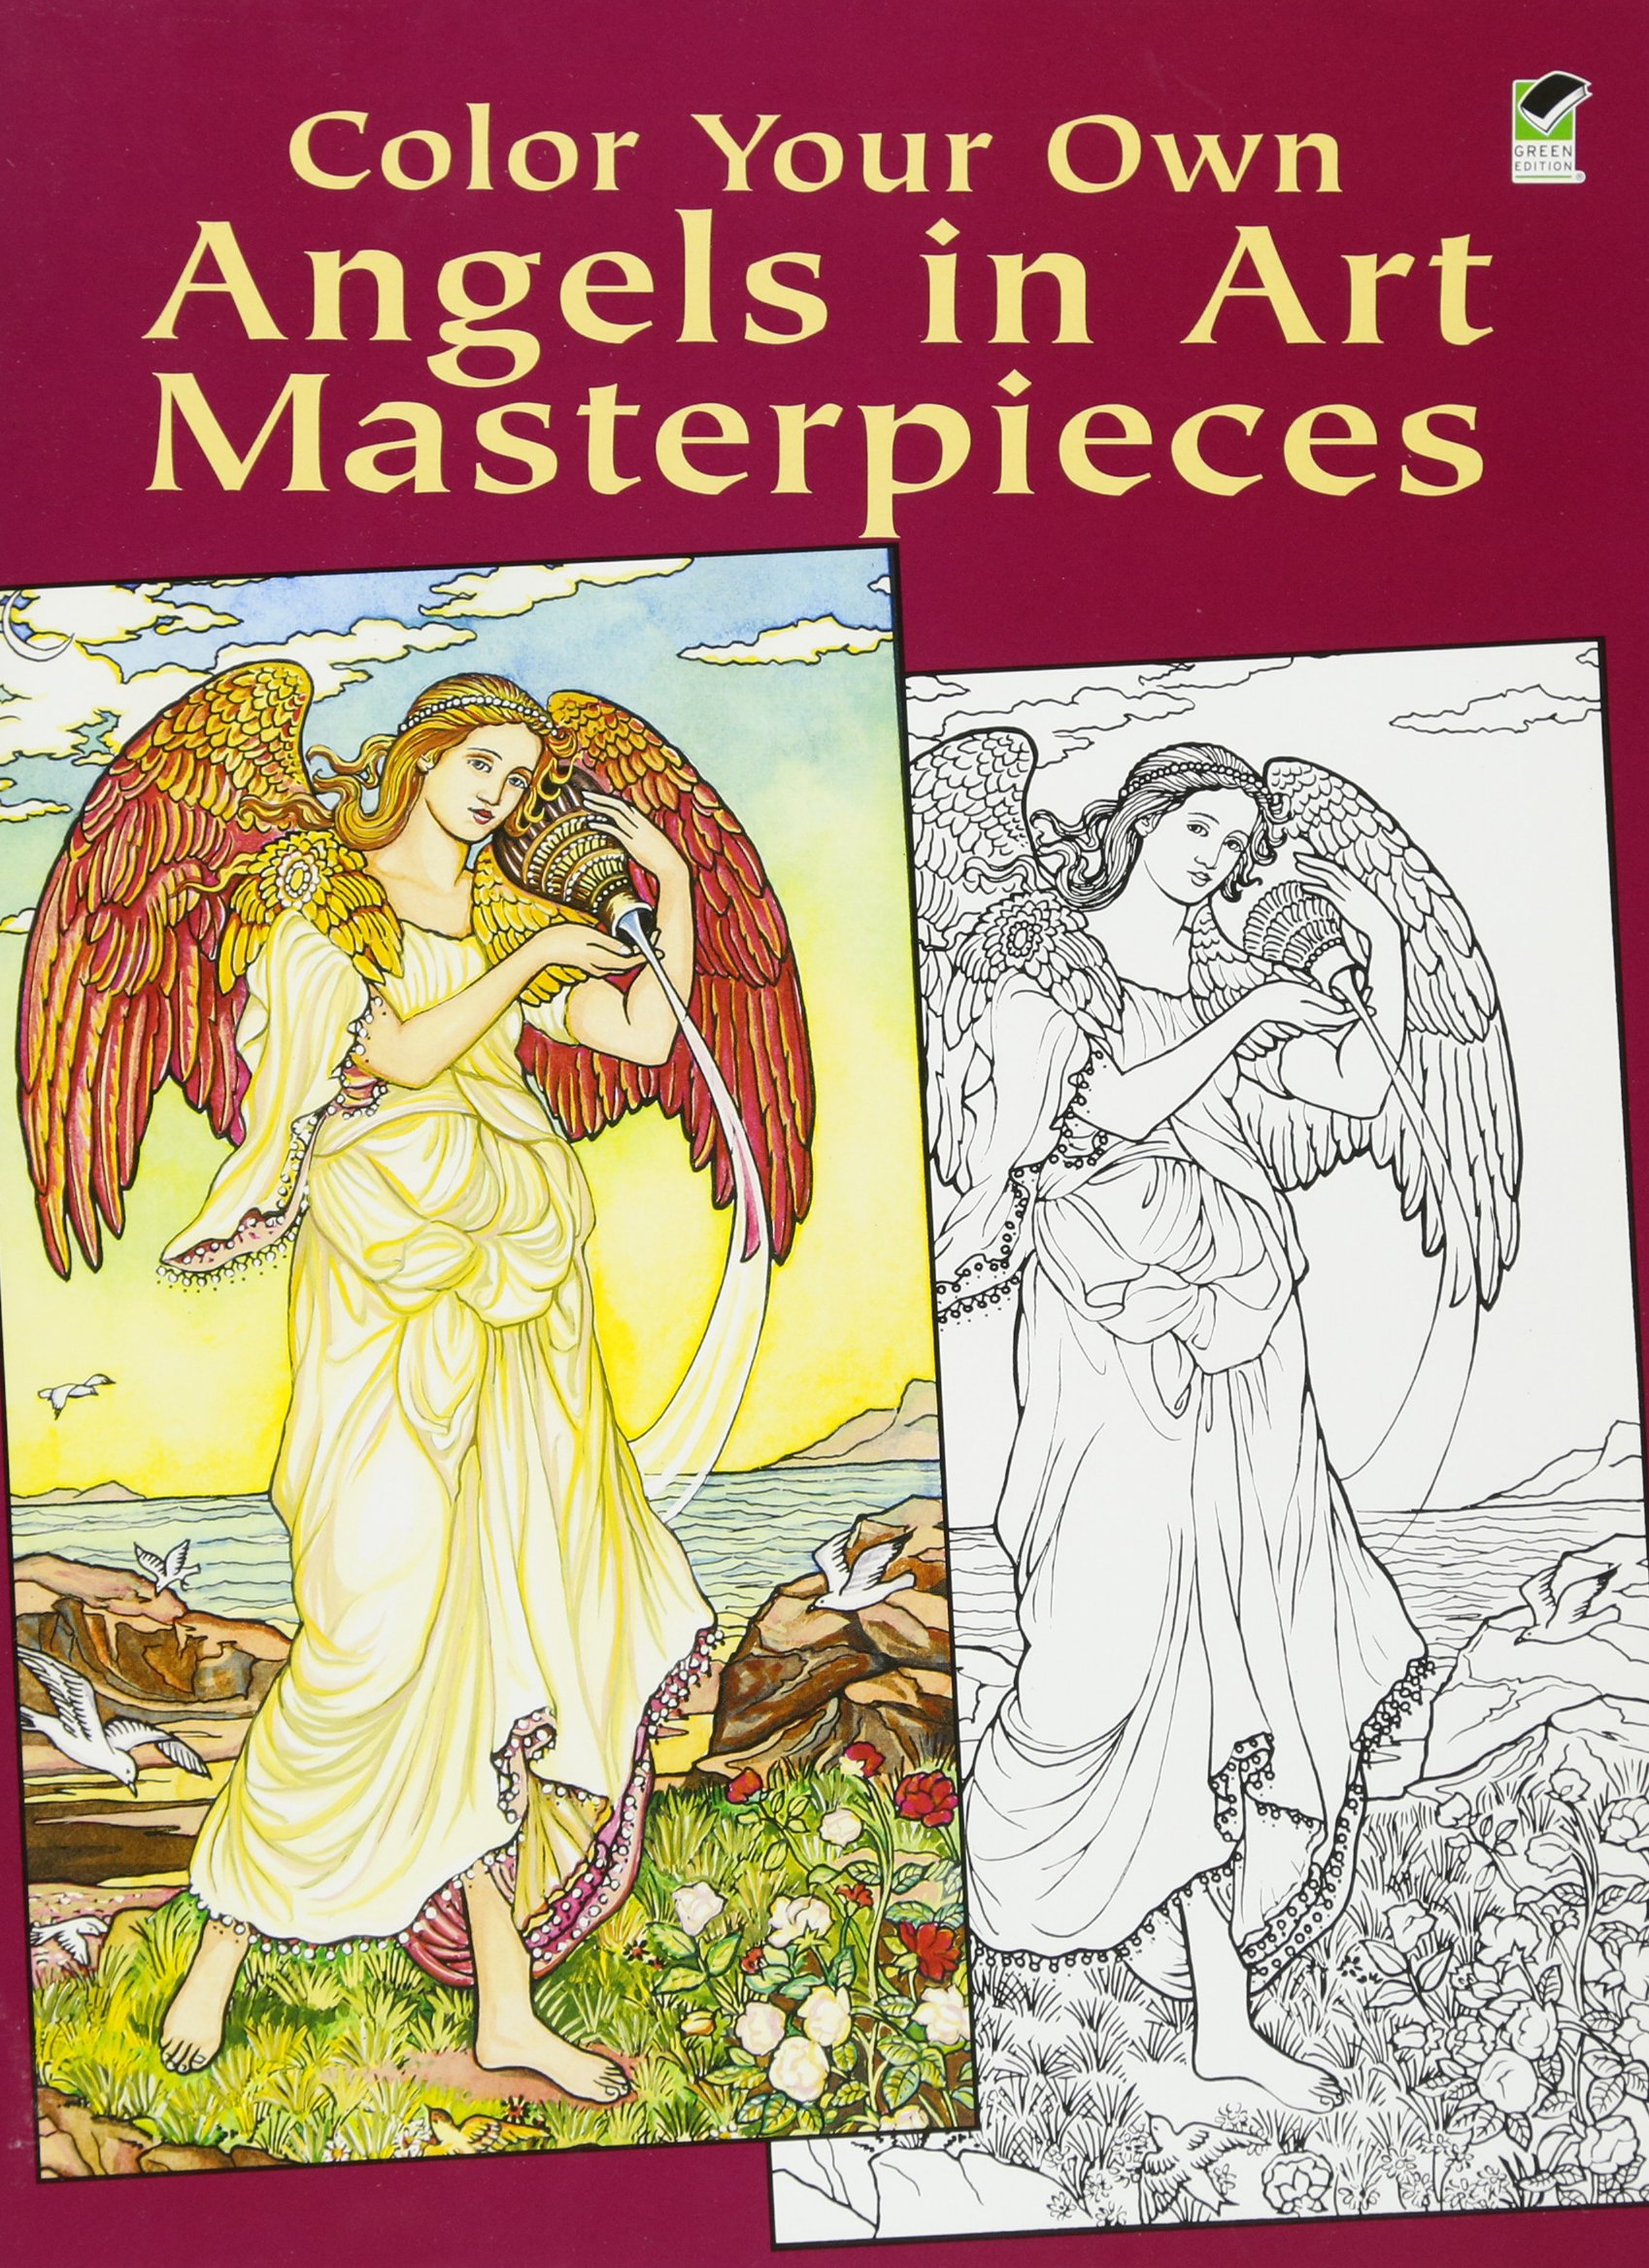 Art color book - Color Your Own Angels In Art Masterpieces Dover Art Coloring Book Marty Noble 9780486430386 Amazon Com Books